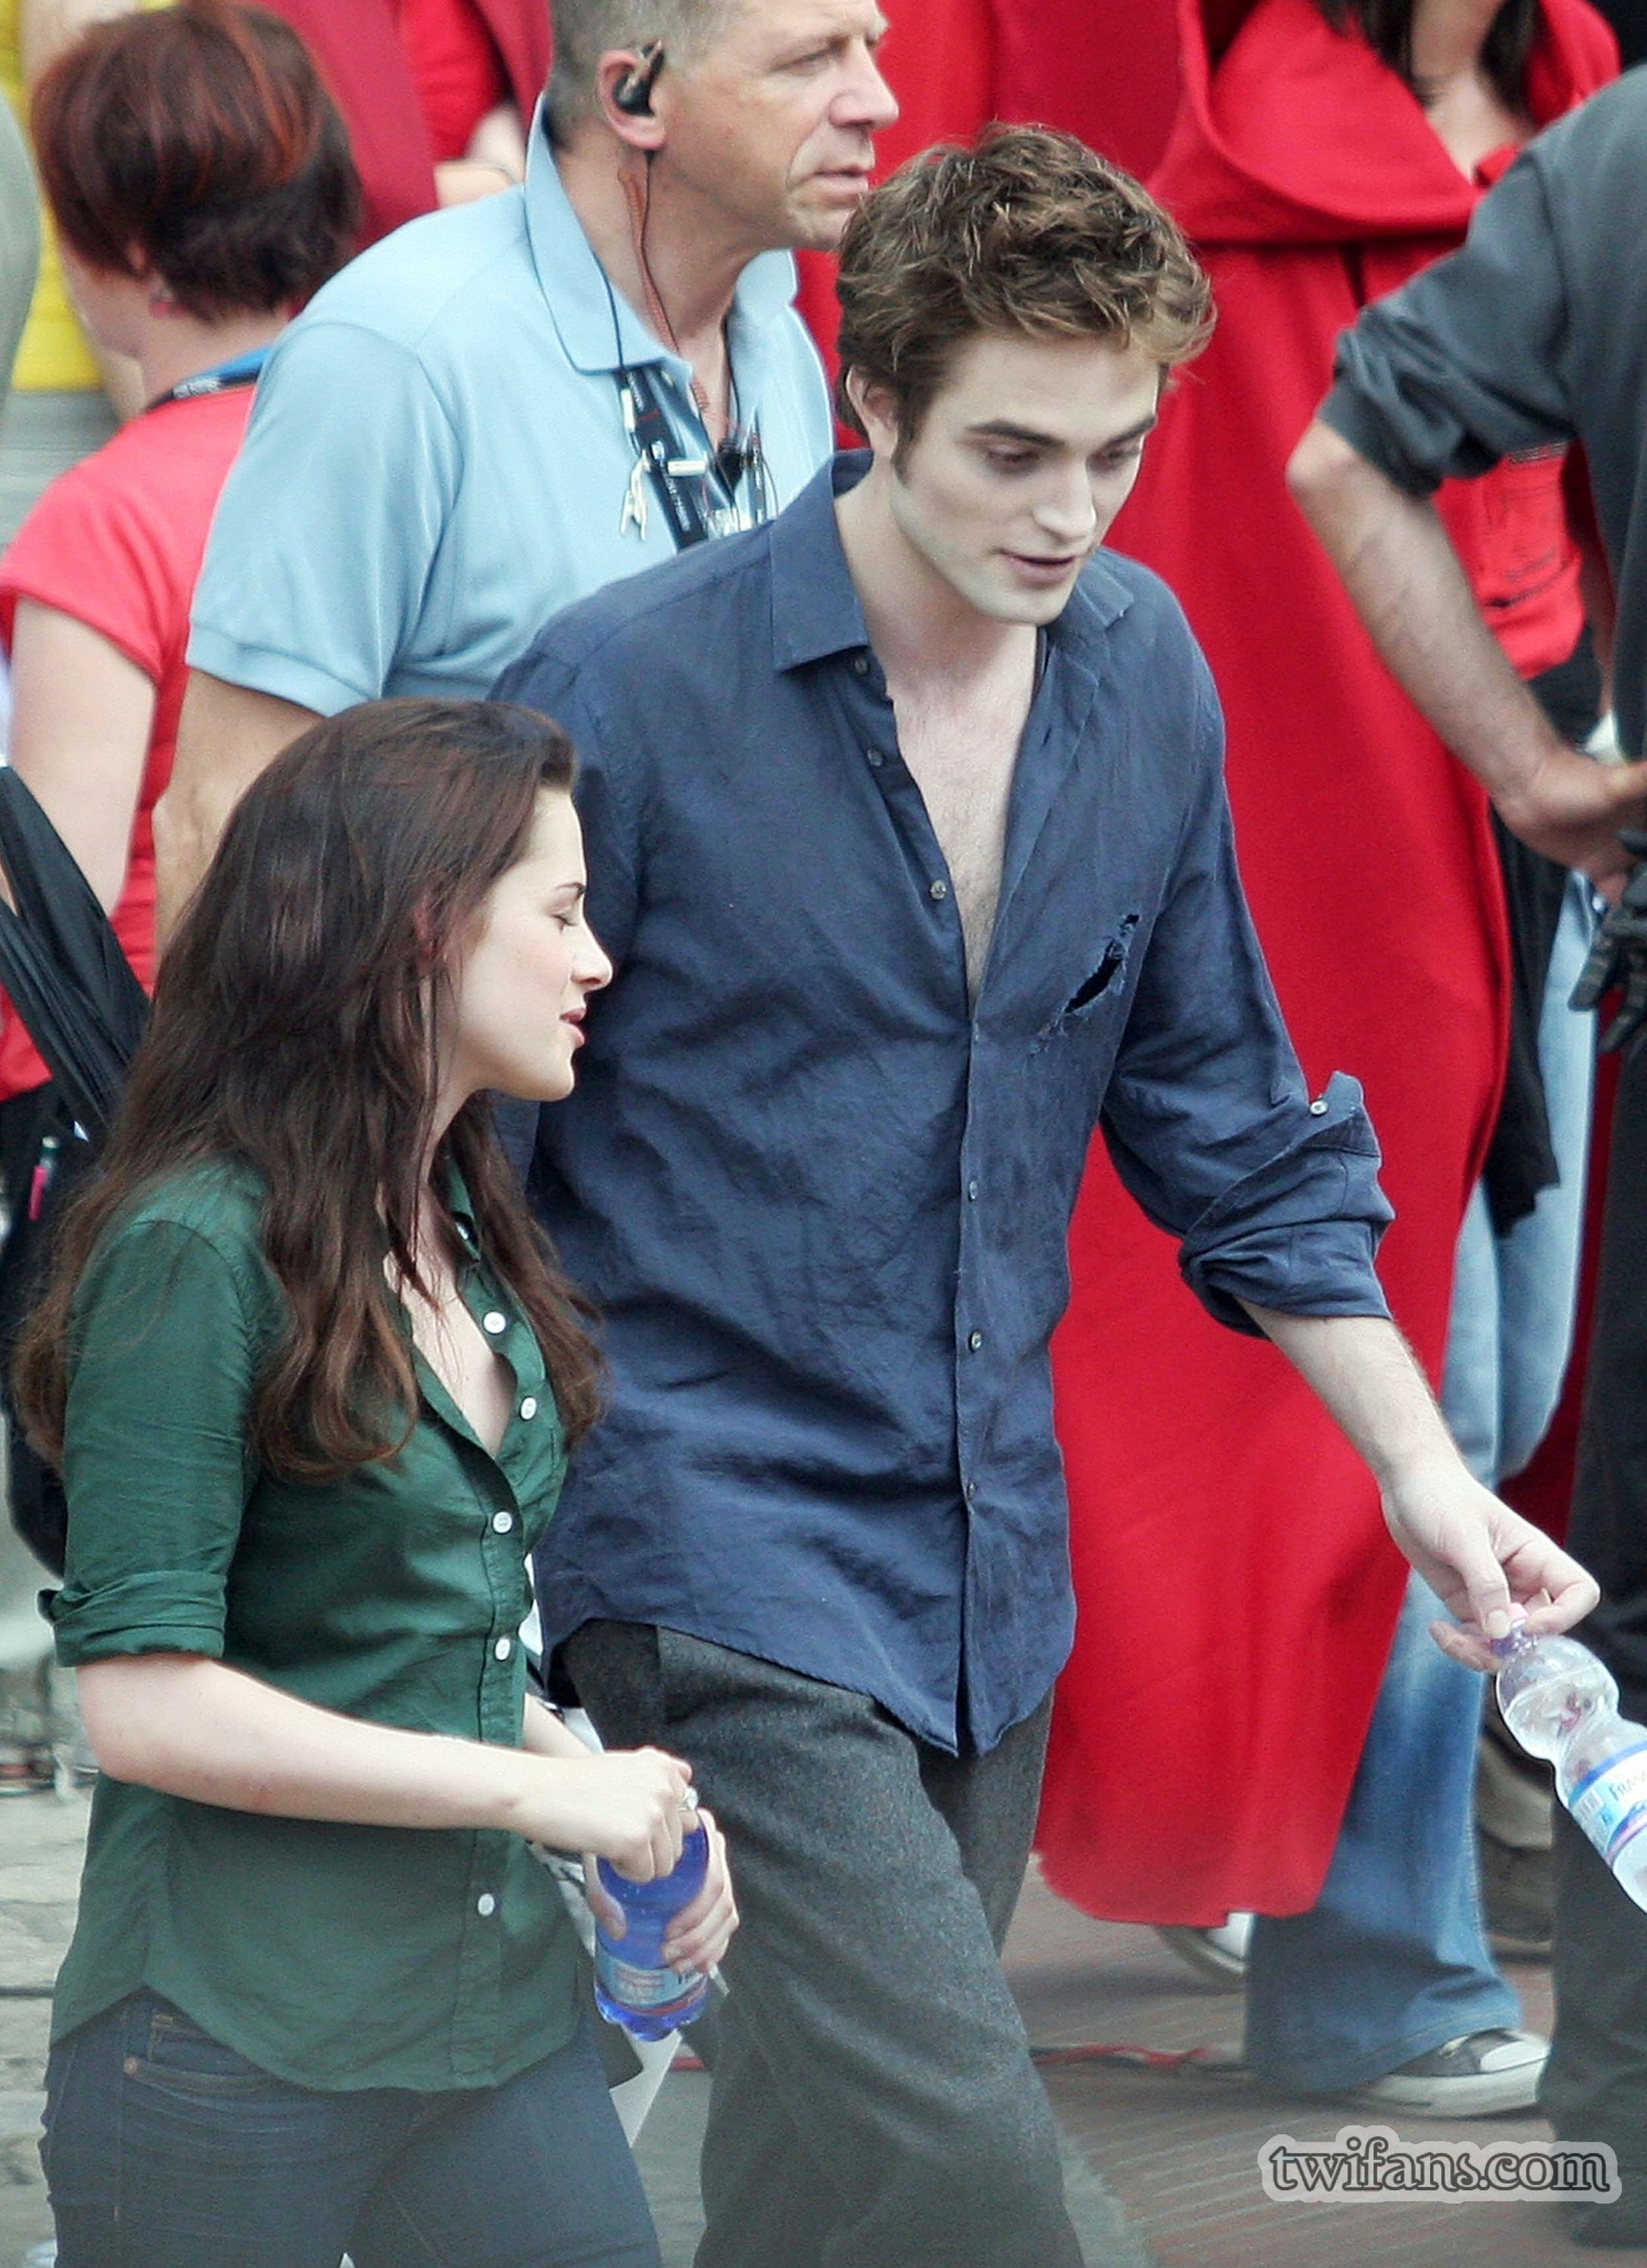 http://images2.fanpop.com/images/photos/6400000/on-set-twilight-series-6431701-1859-2560.jpg